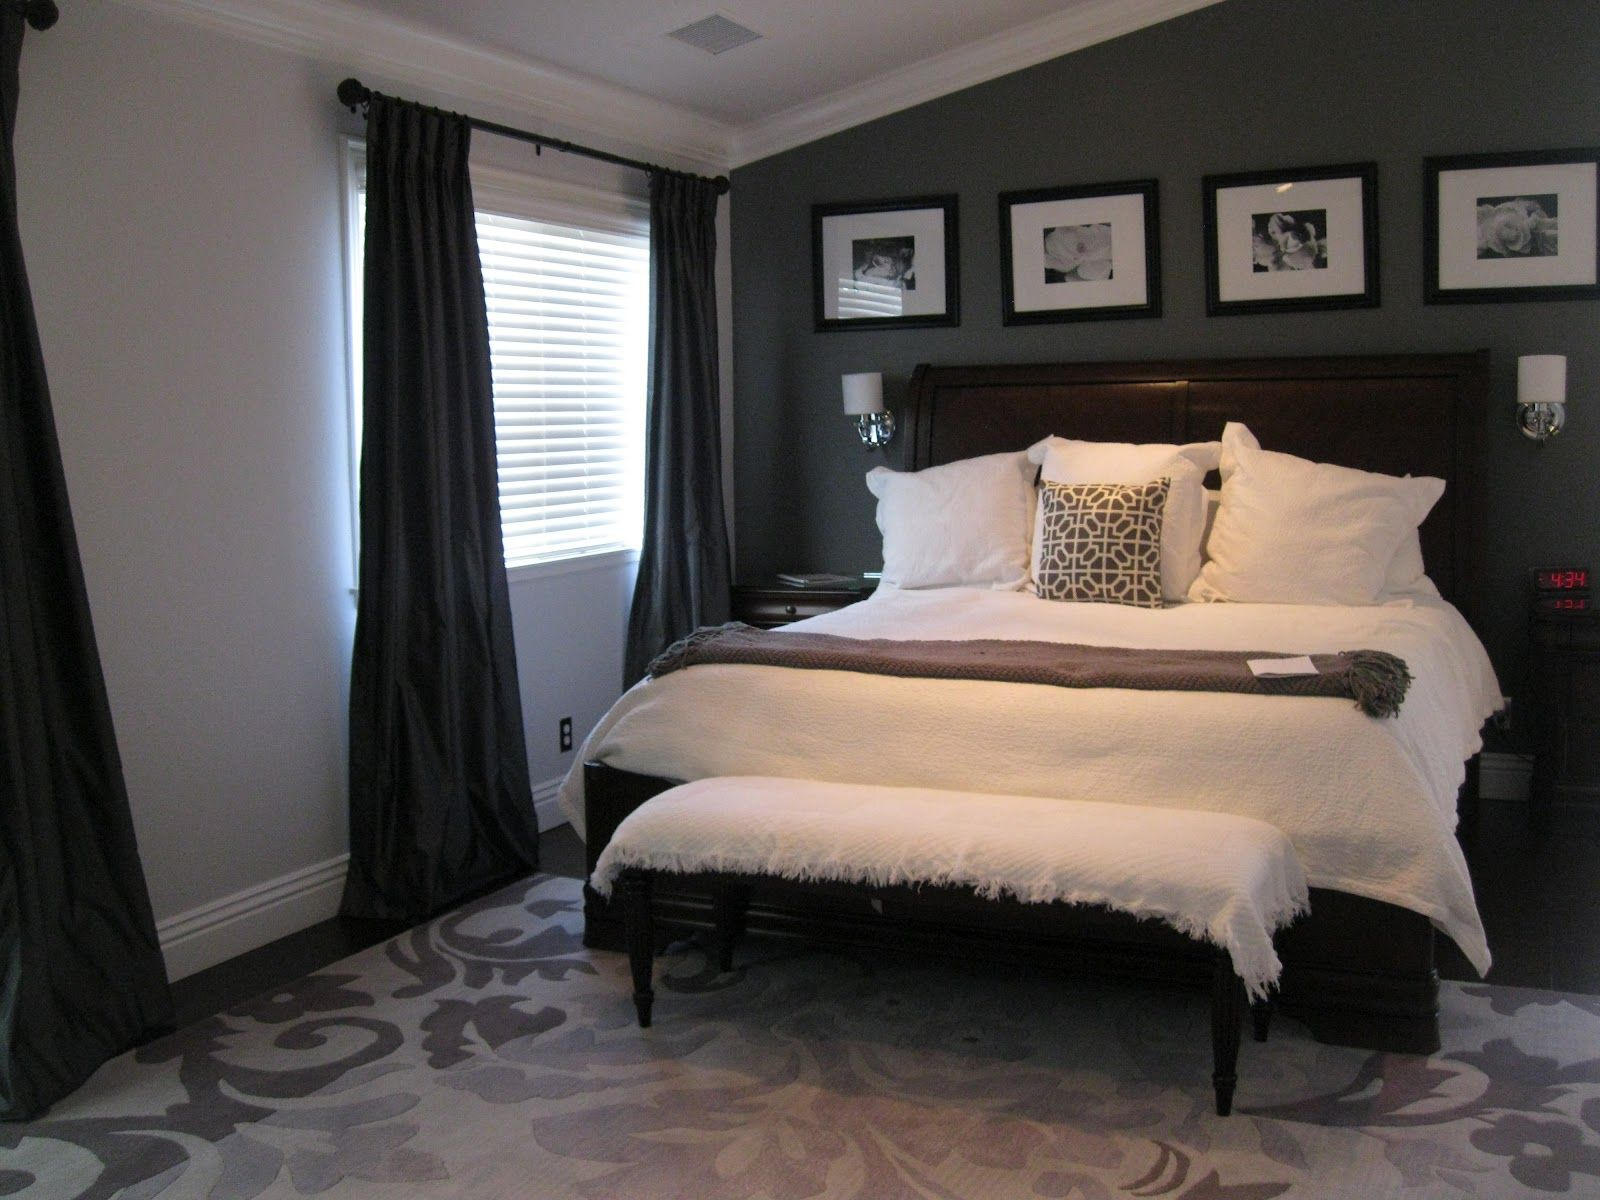 Pin Scott Mclaughlin On Home Decor Bedroom Pinterest in 10 Dark Grey Bedroom Ideas  Awesome as well as Interesting